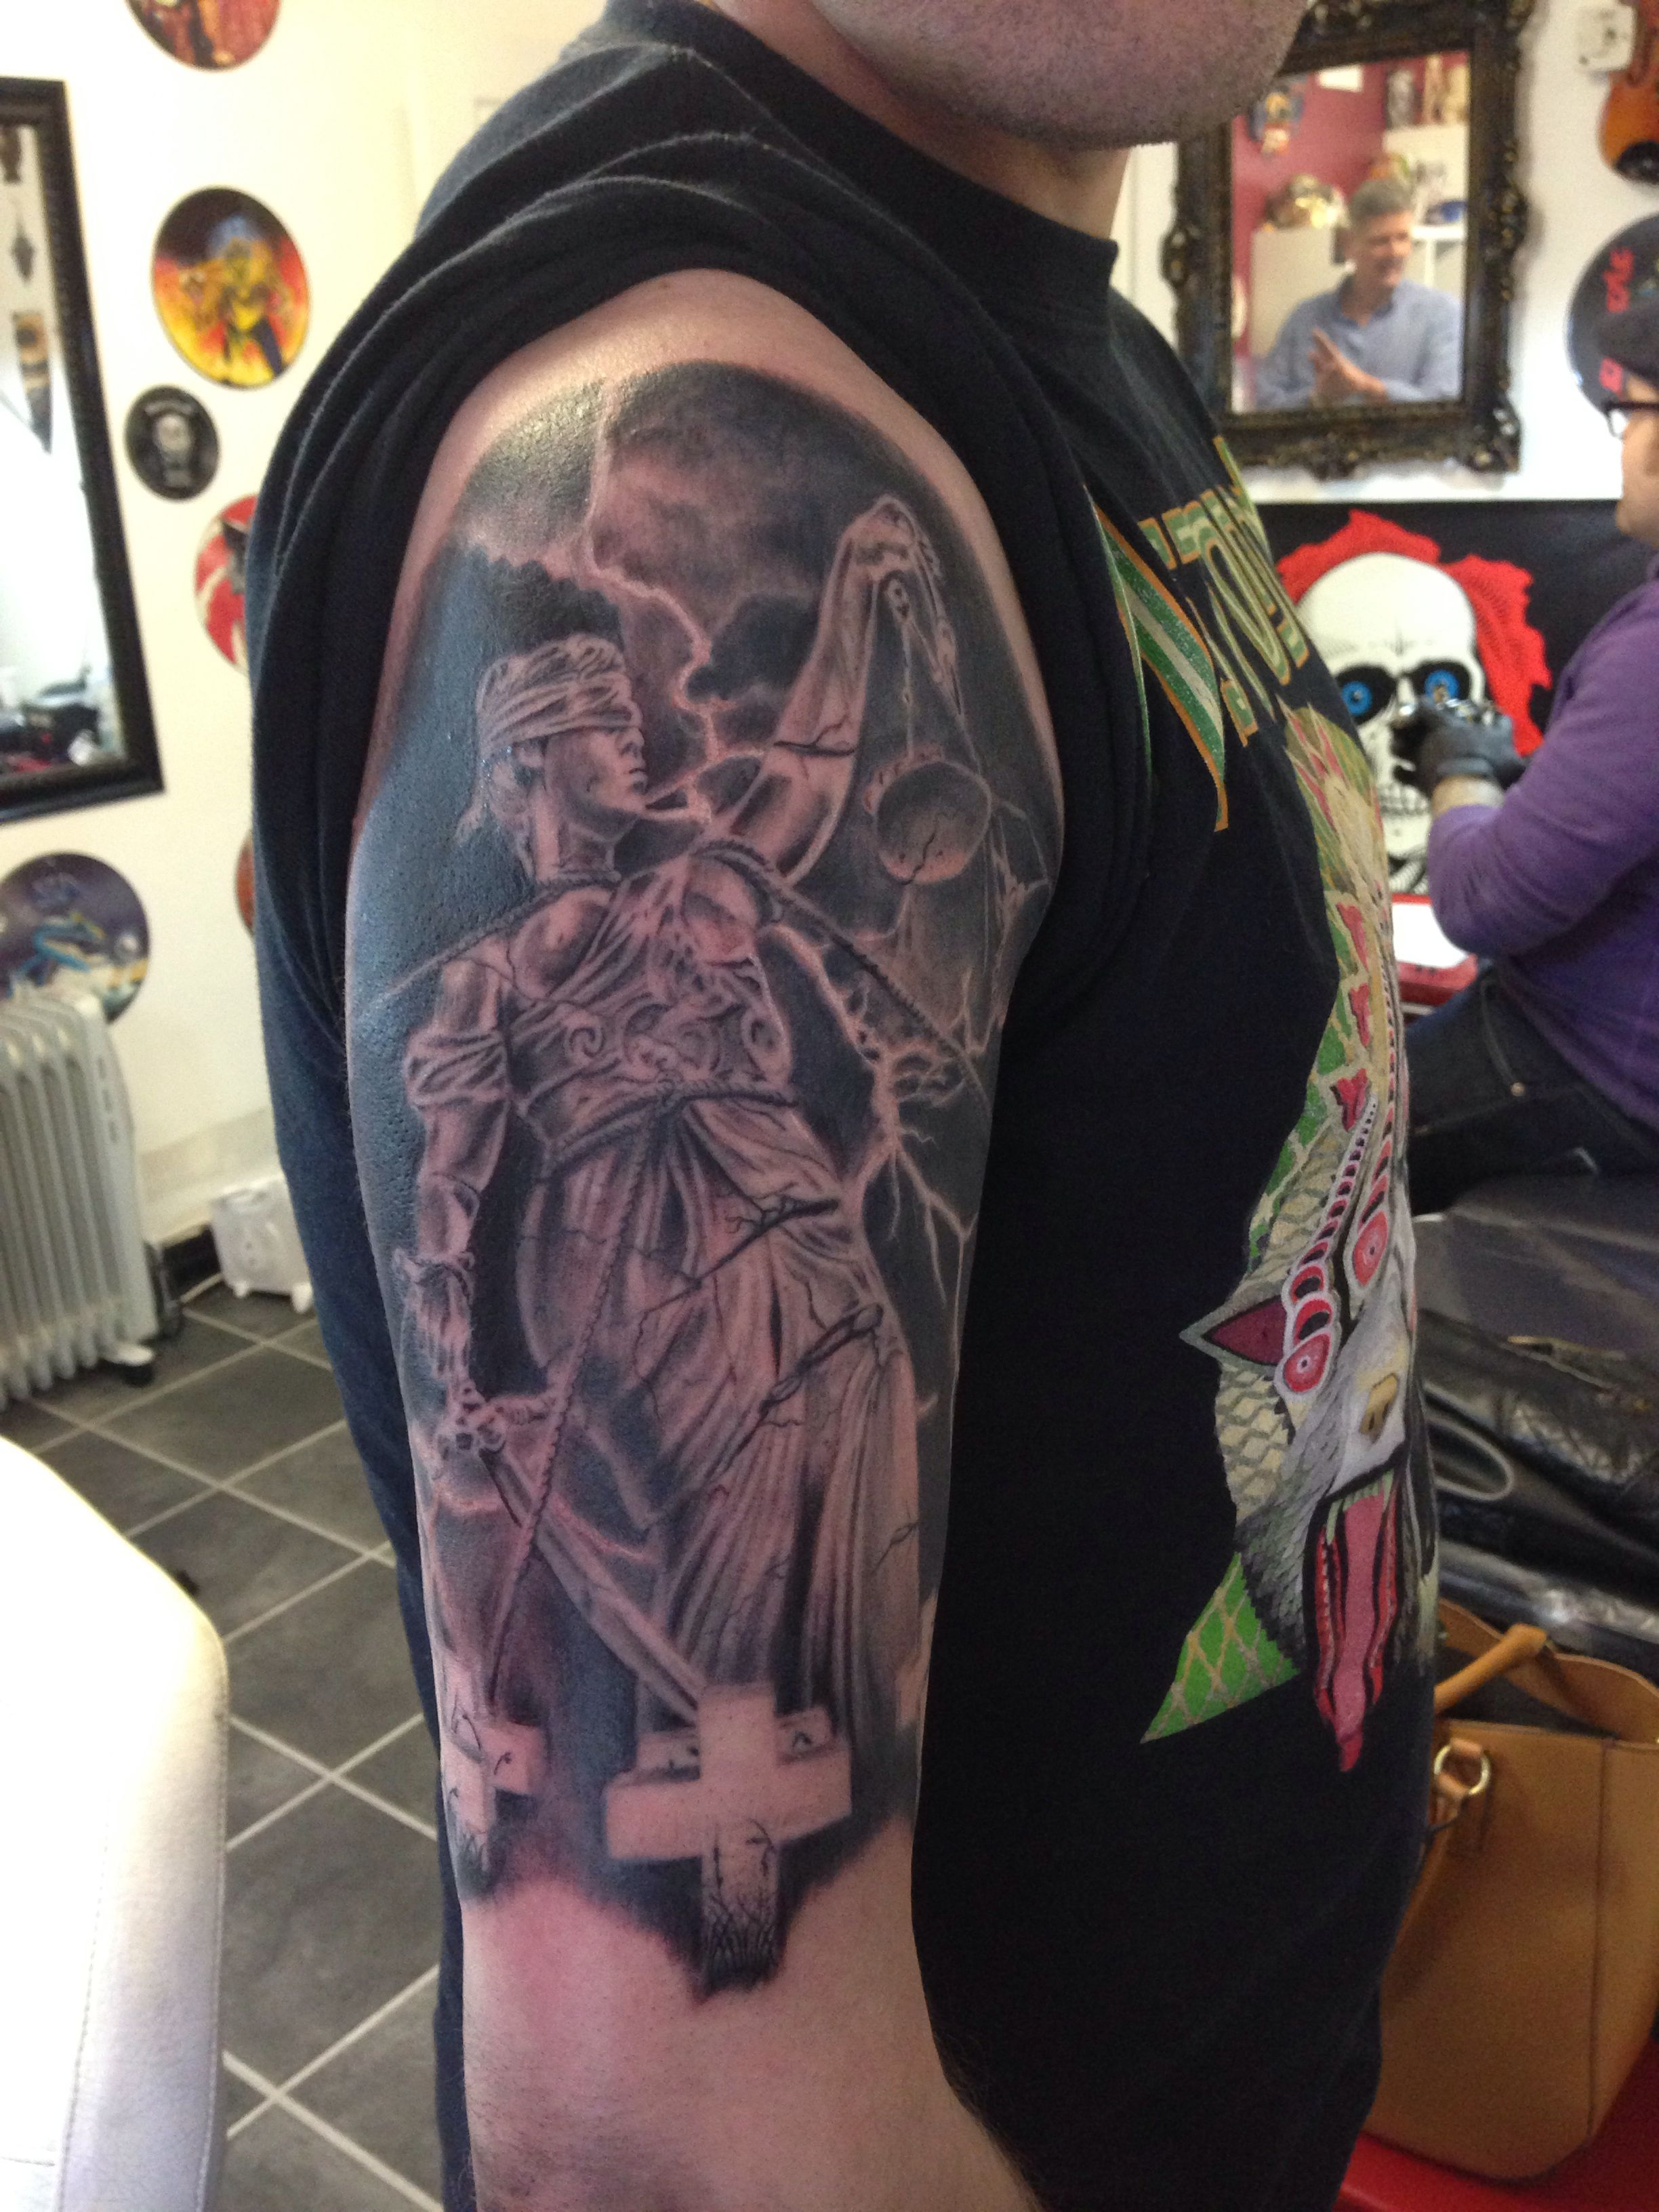 d5dae2a0e93e1 My Metallica tattoo by Talisman Tattoostudio York. | tattoos ...